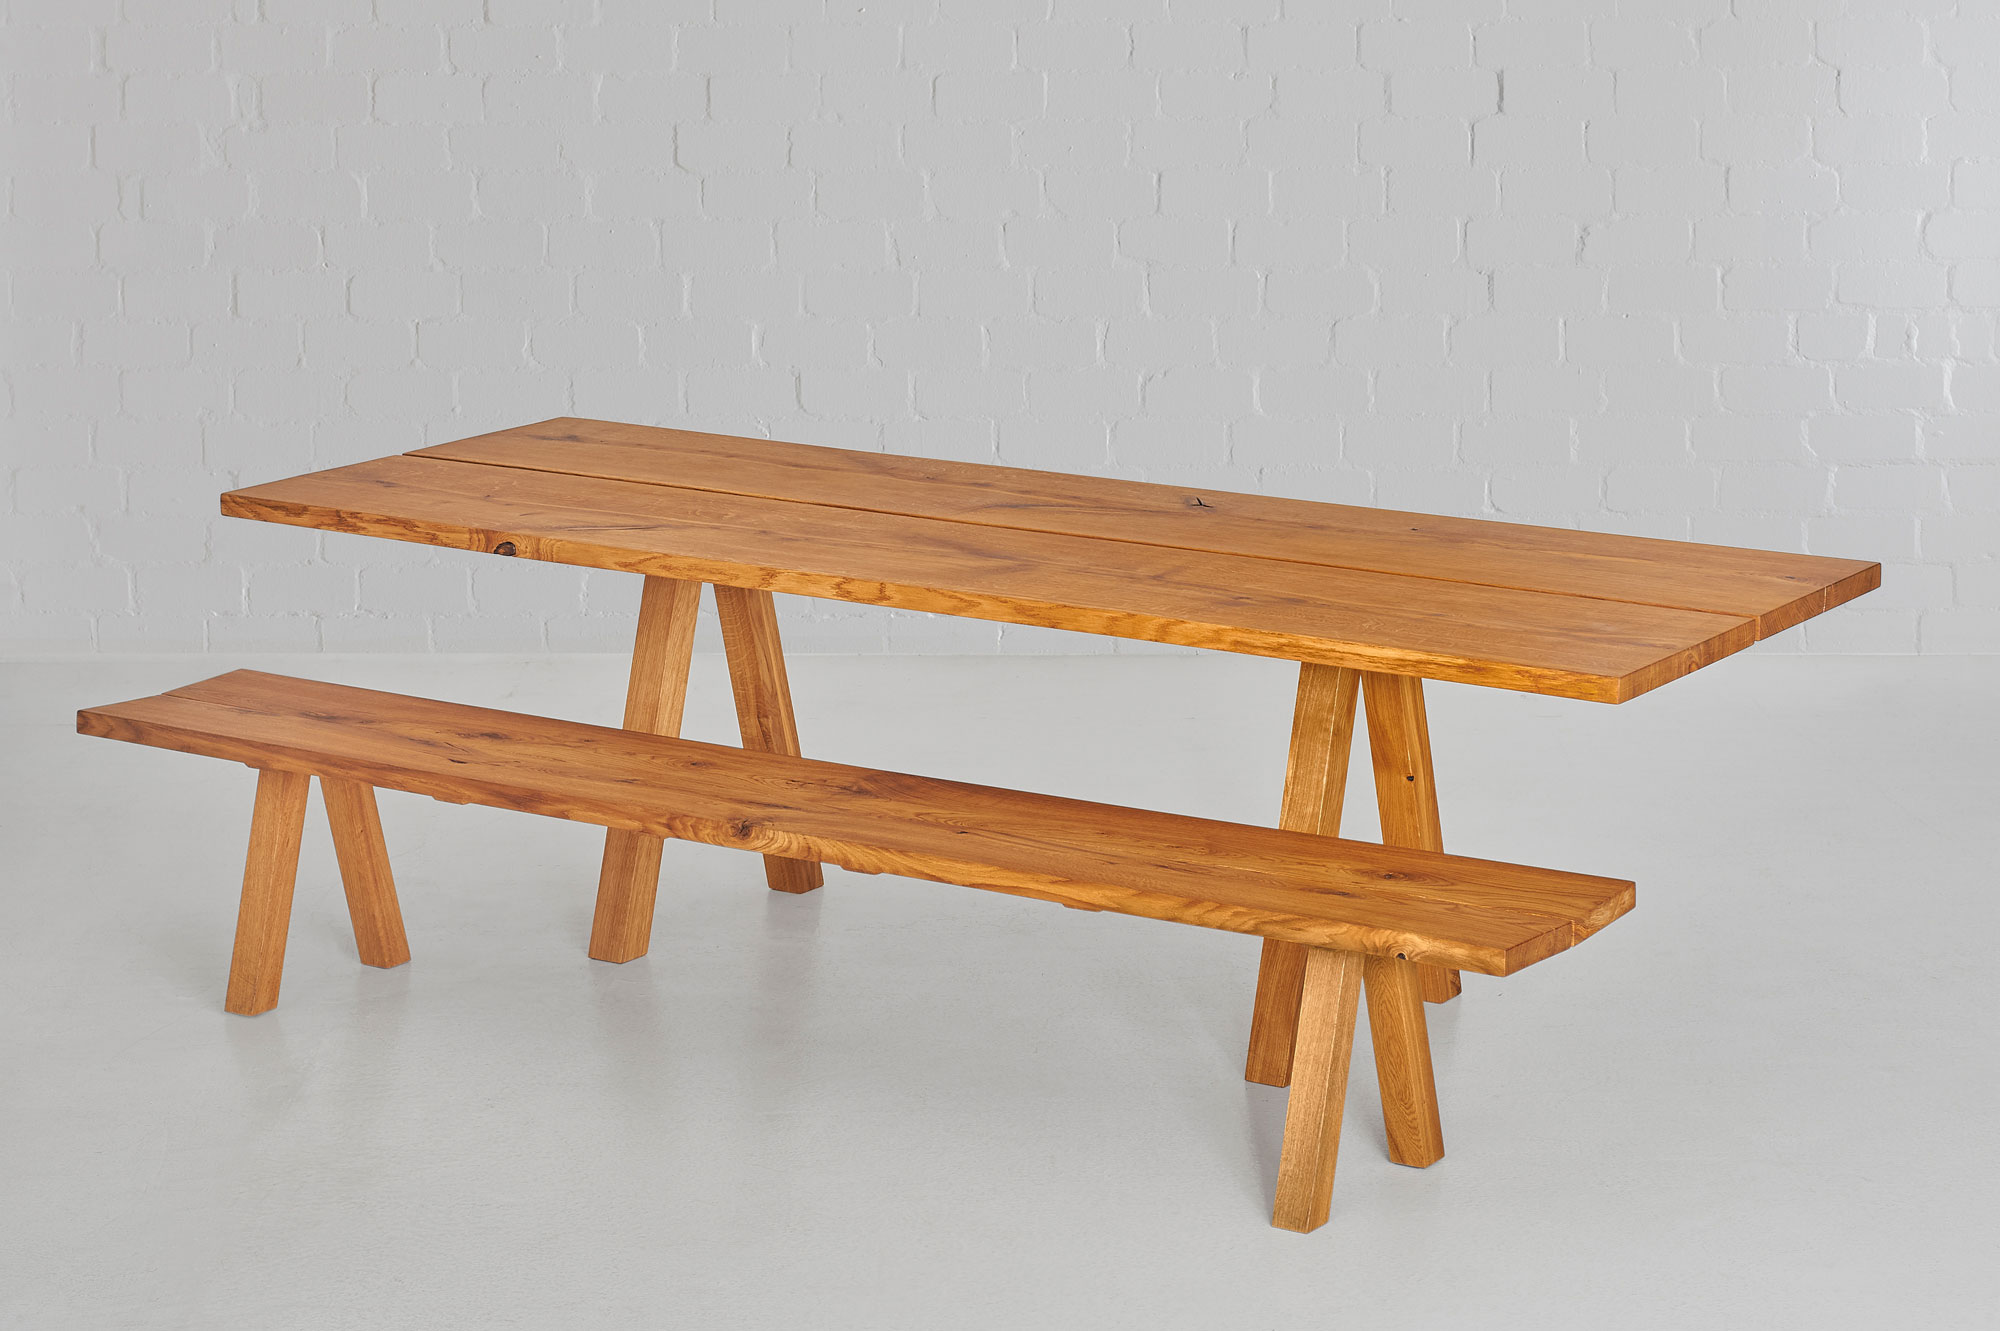 Dining Room Bench PAPILIO 0469 custom made in solid wood by vitamin design